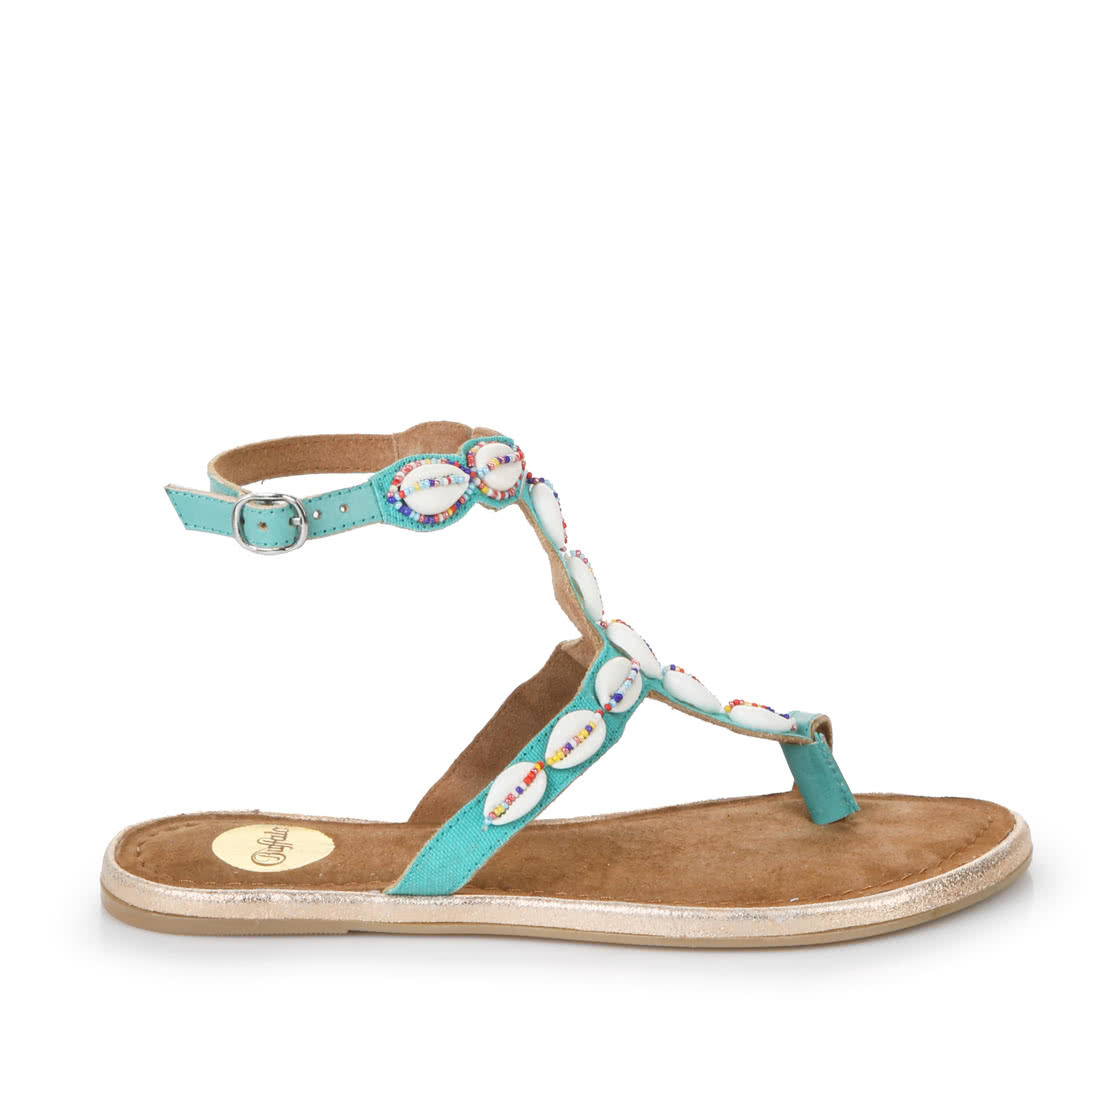 c9e173d8ac11 Buffalo flip flops in turquoise with shell embellishments buy online ...